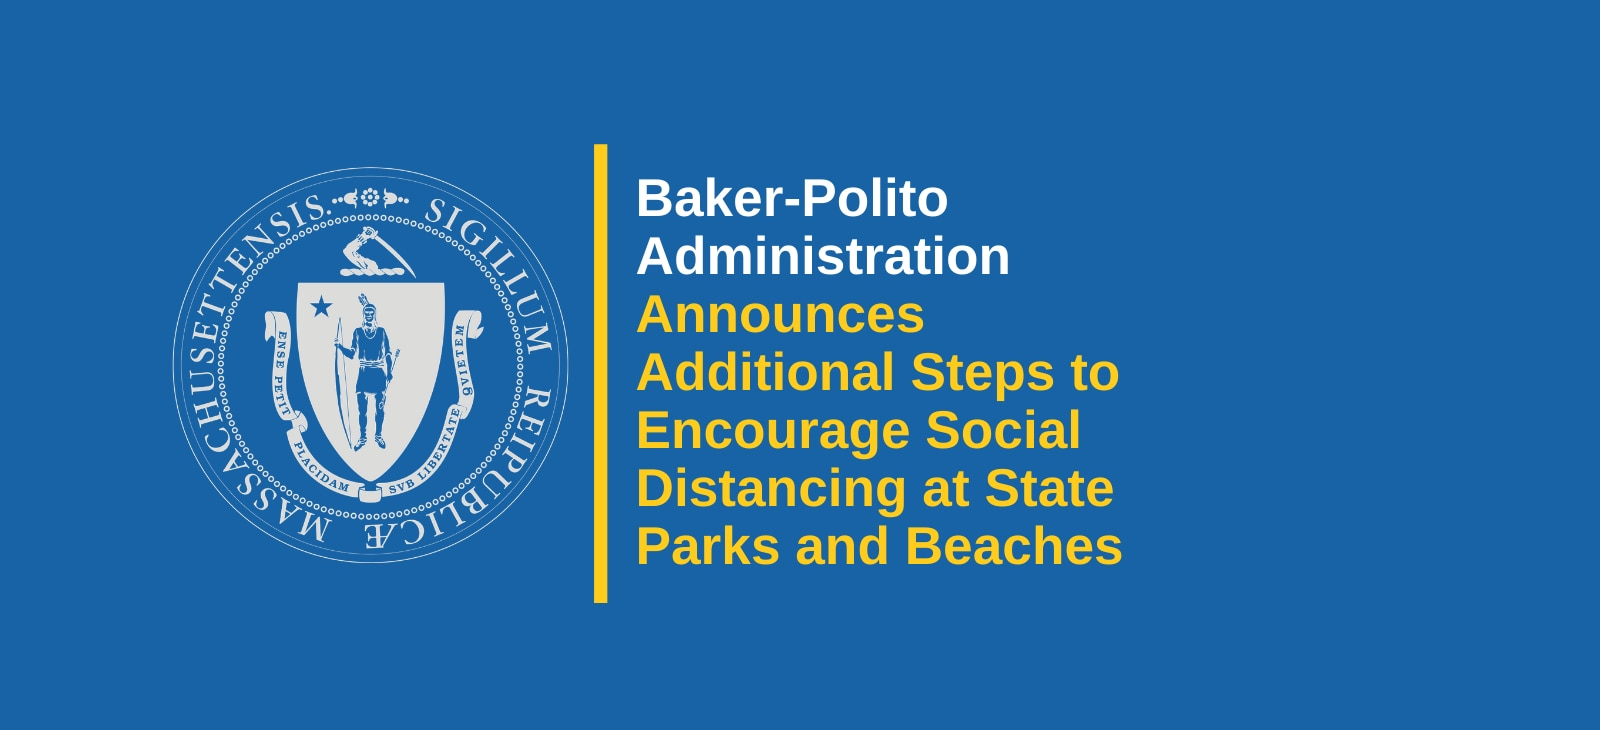 Baker-Polito Administration Announces Additional Steps to Encourage Social Distancing at State Parks and Beaches